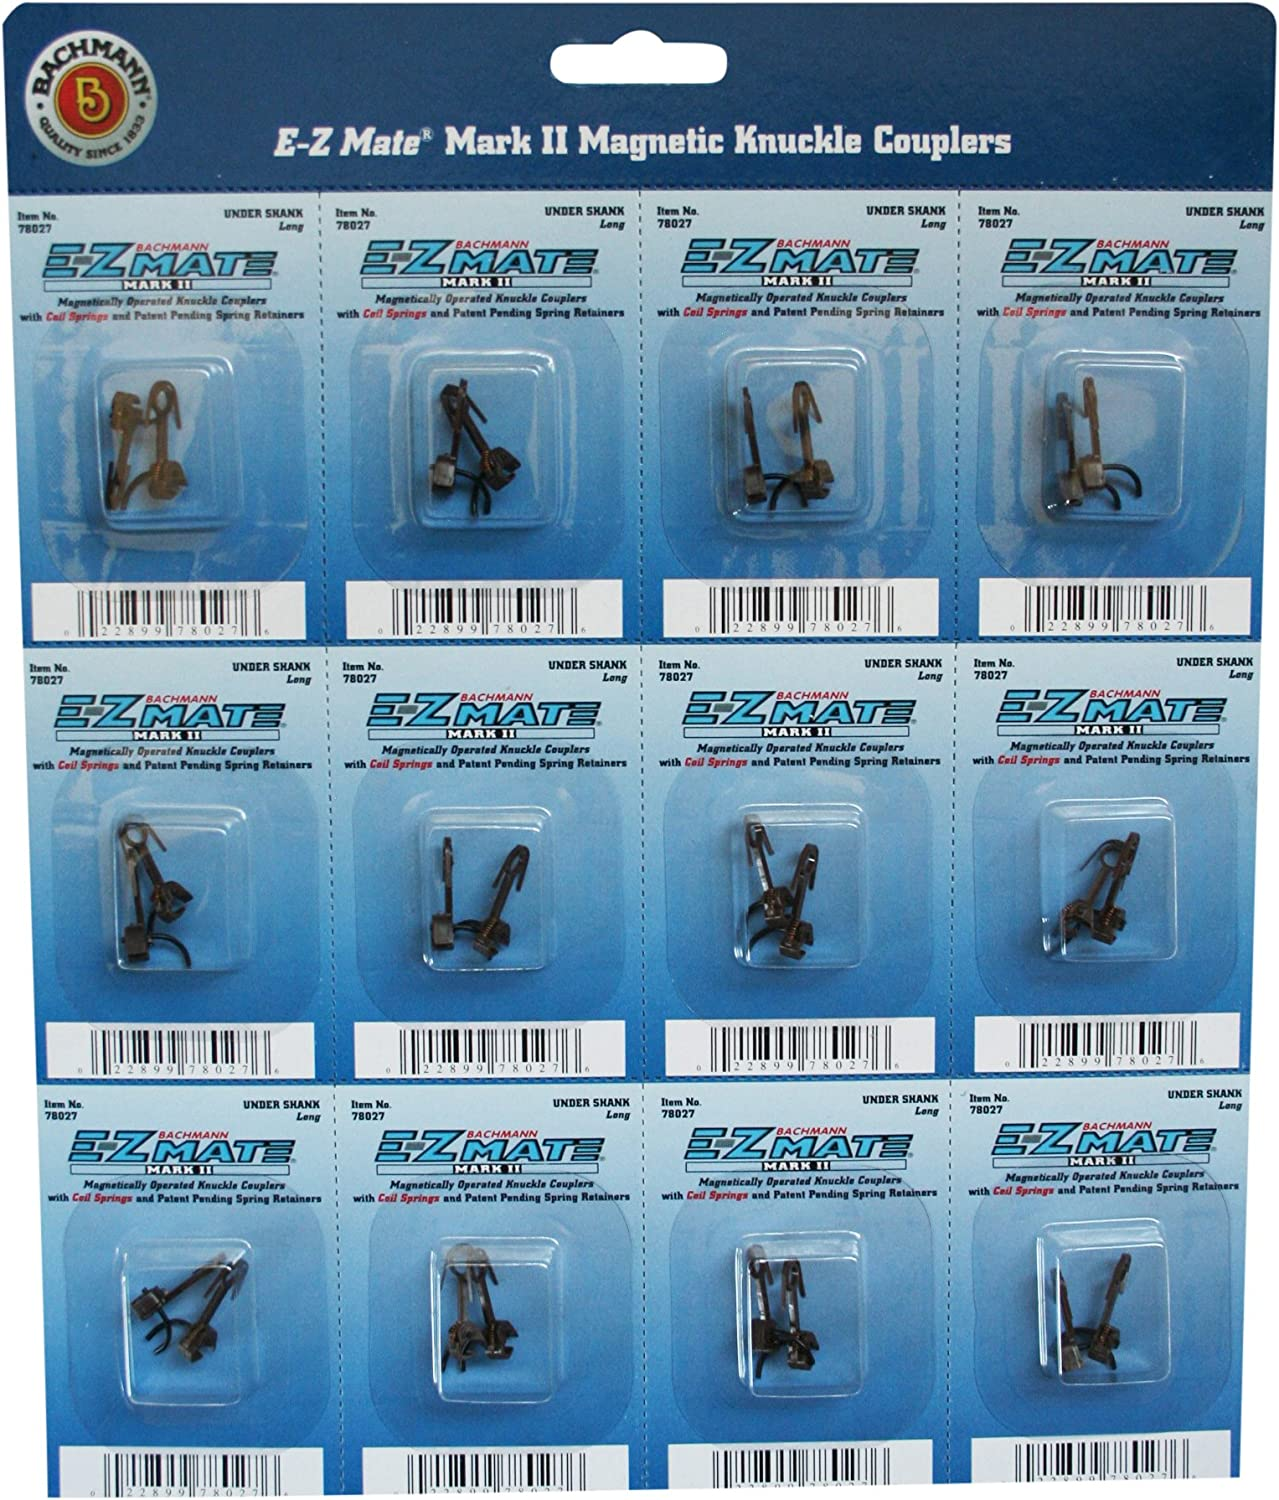 B0006O84J4 Bachmann Trains E - Z Mate Mark II Magnetic Knuckle Couplers with Metal Coil Spring - Under Shank - Long (12 Coupler pairs per card) - HO Scale 81jEPykvnQL